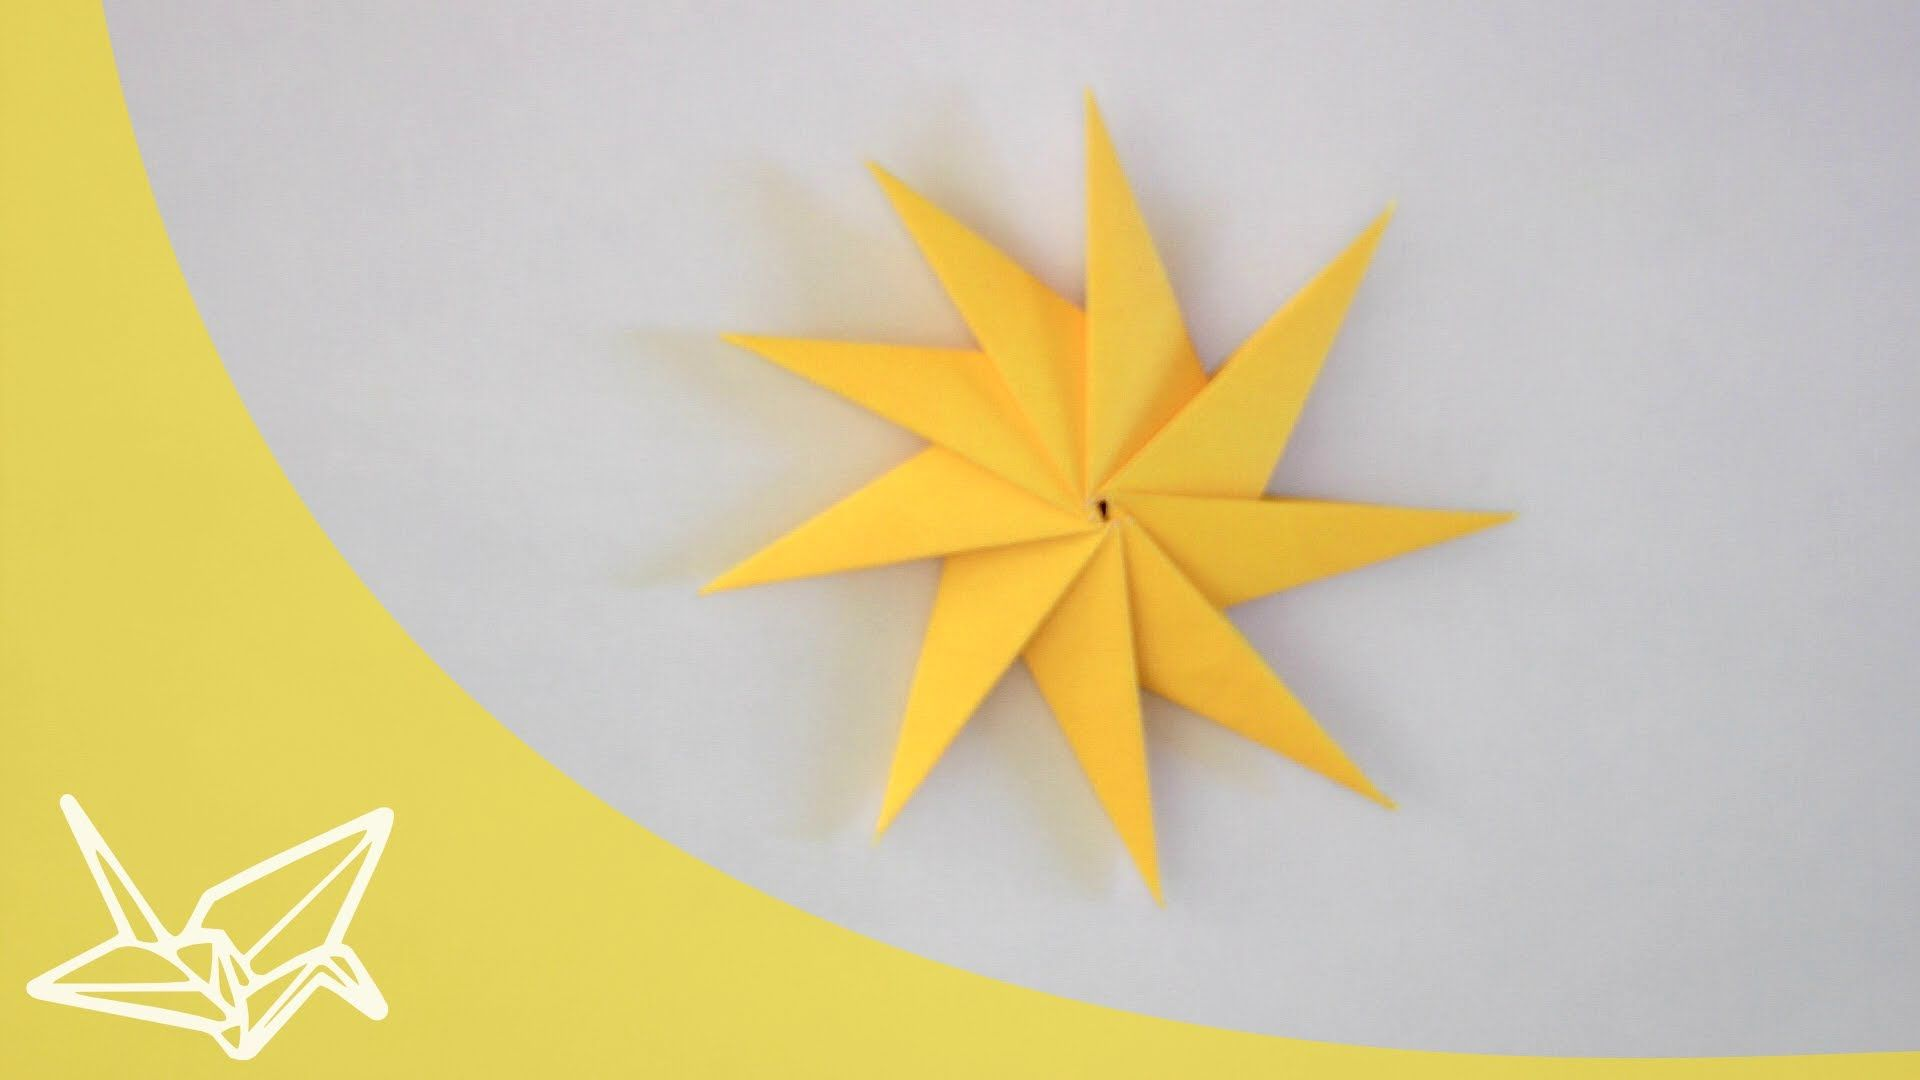 Spinning Star Or Sun Origami Pinterest Origami Asian Crafts